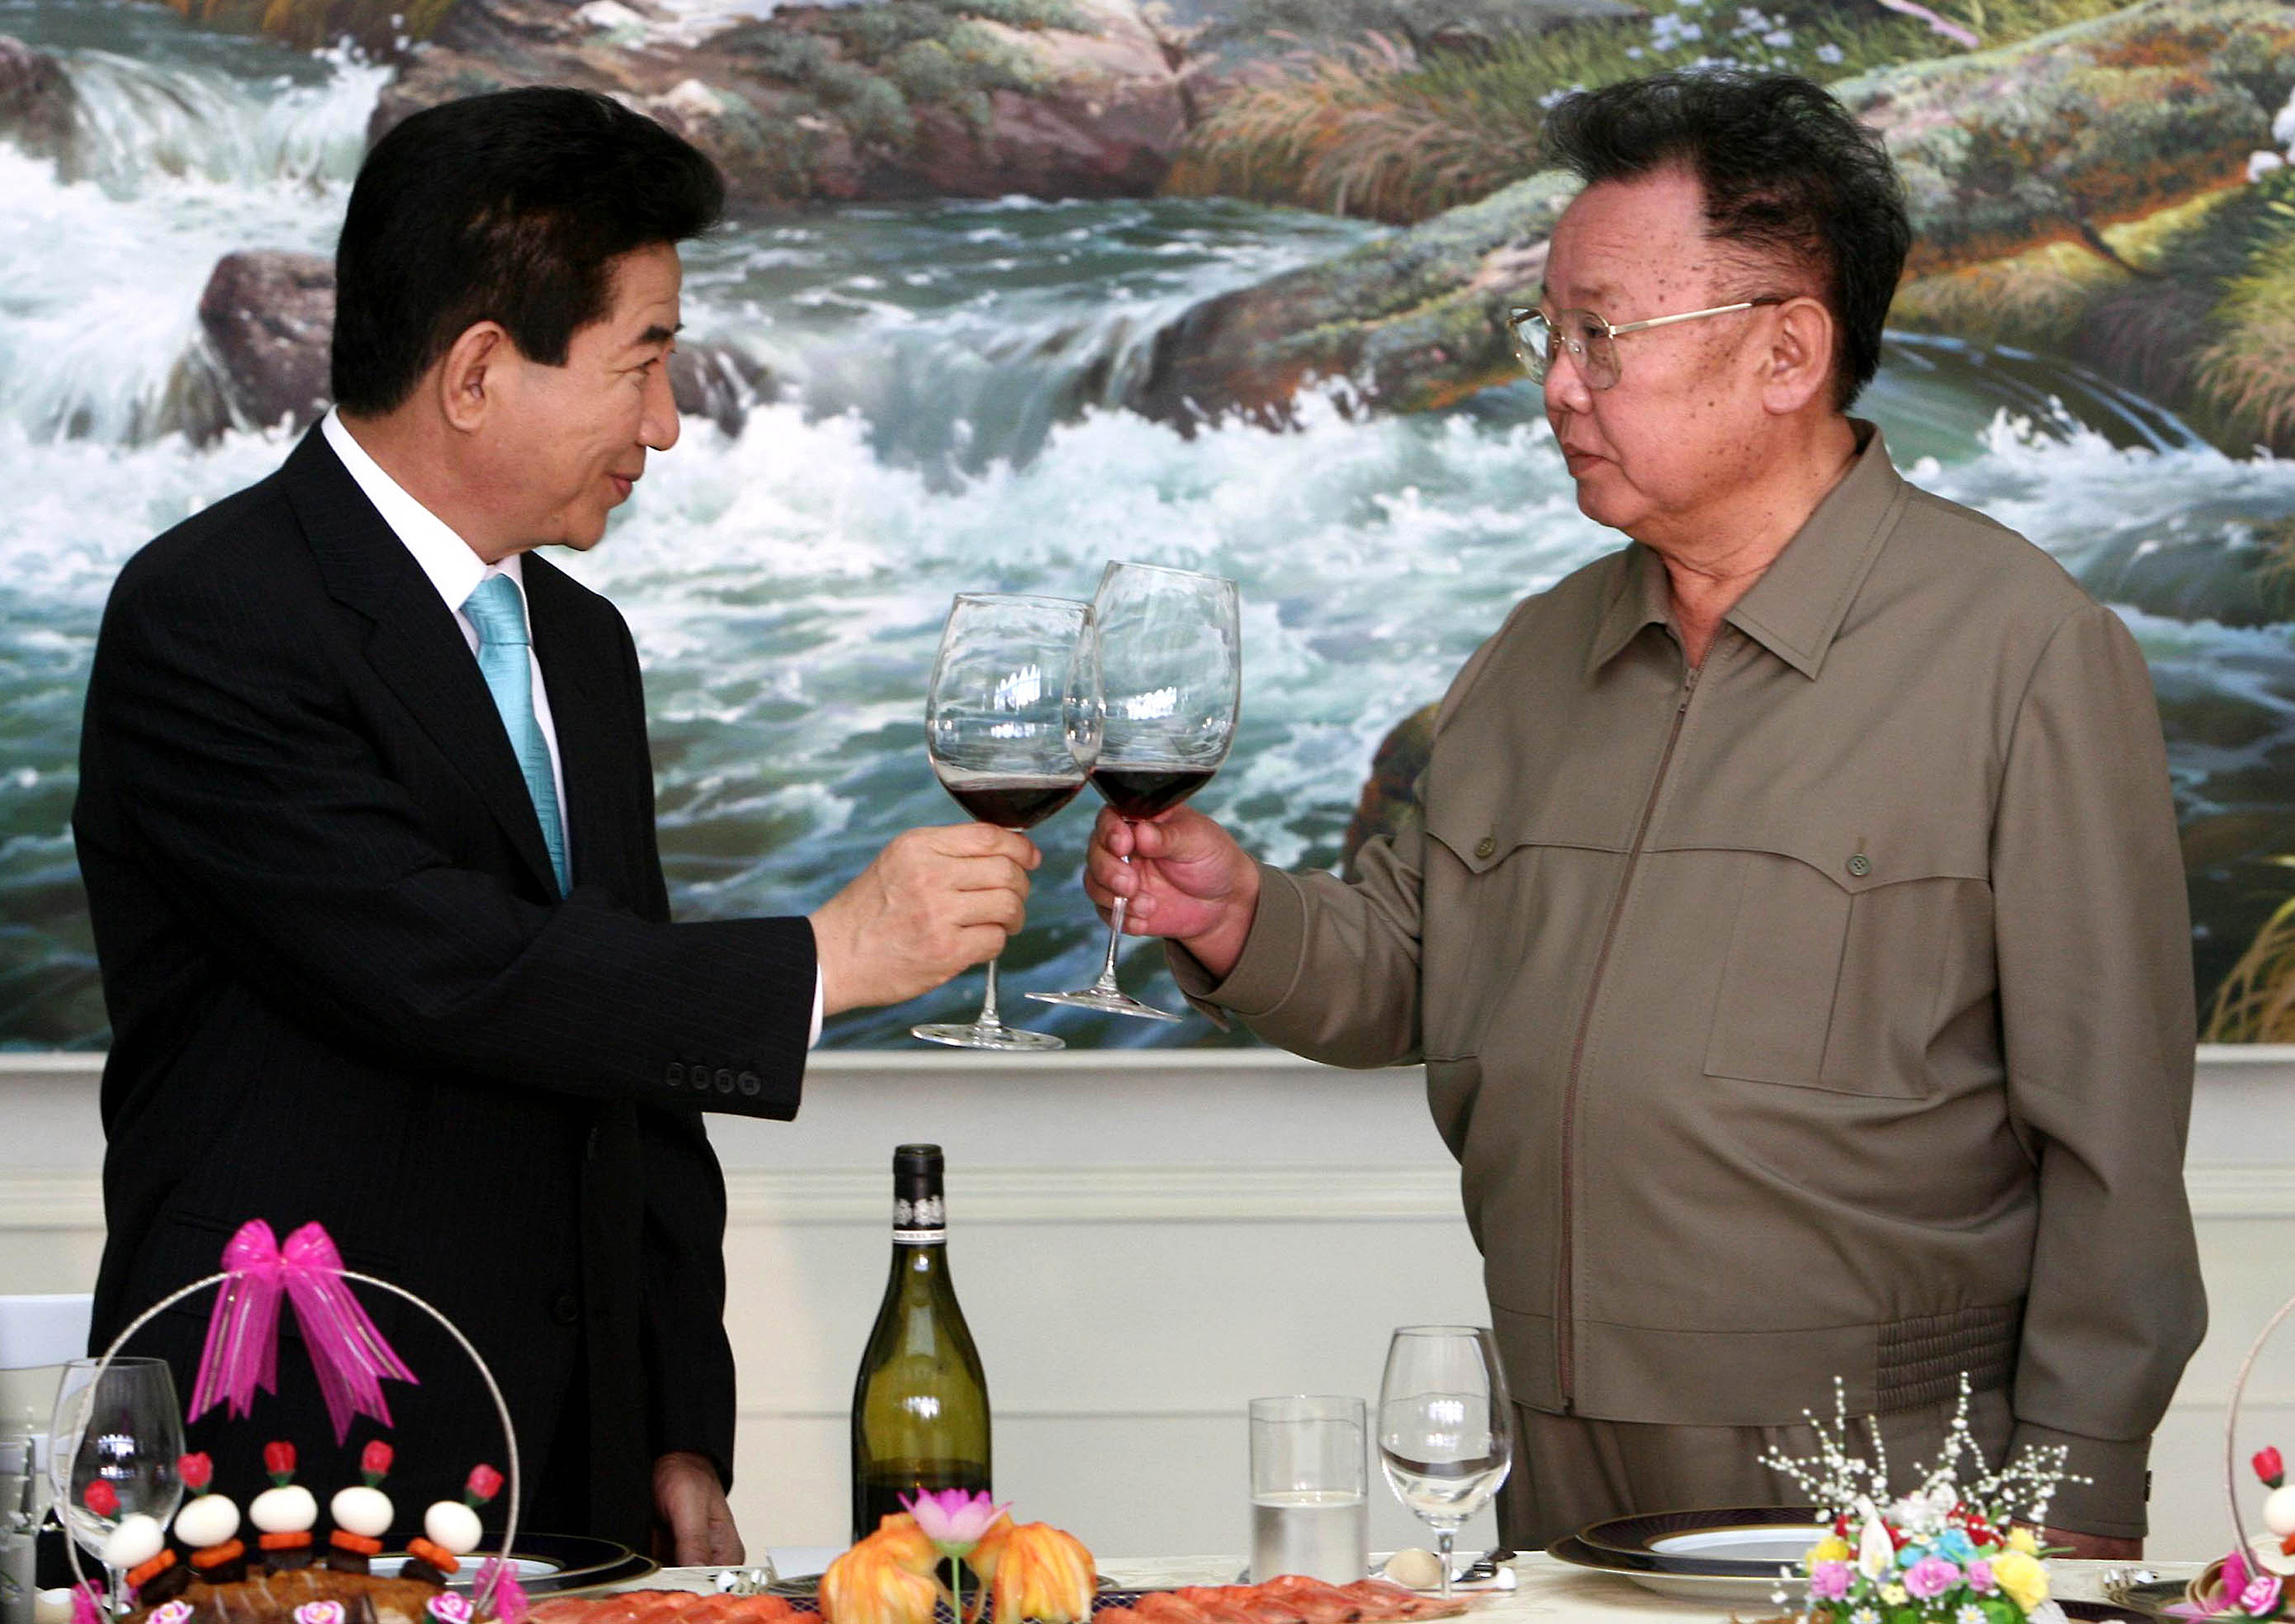 North Korean Leader Kim Jong-Il and South Korean President Roh Moo-Hyun (L) toast during a luncheon hosted by Kim for the inter-Korea Summit in Pyongyang, North Korea,on Oct. 4, 2007.